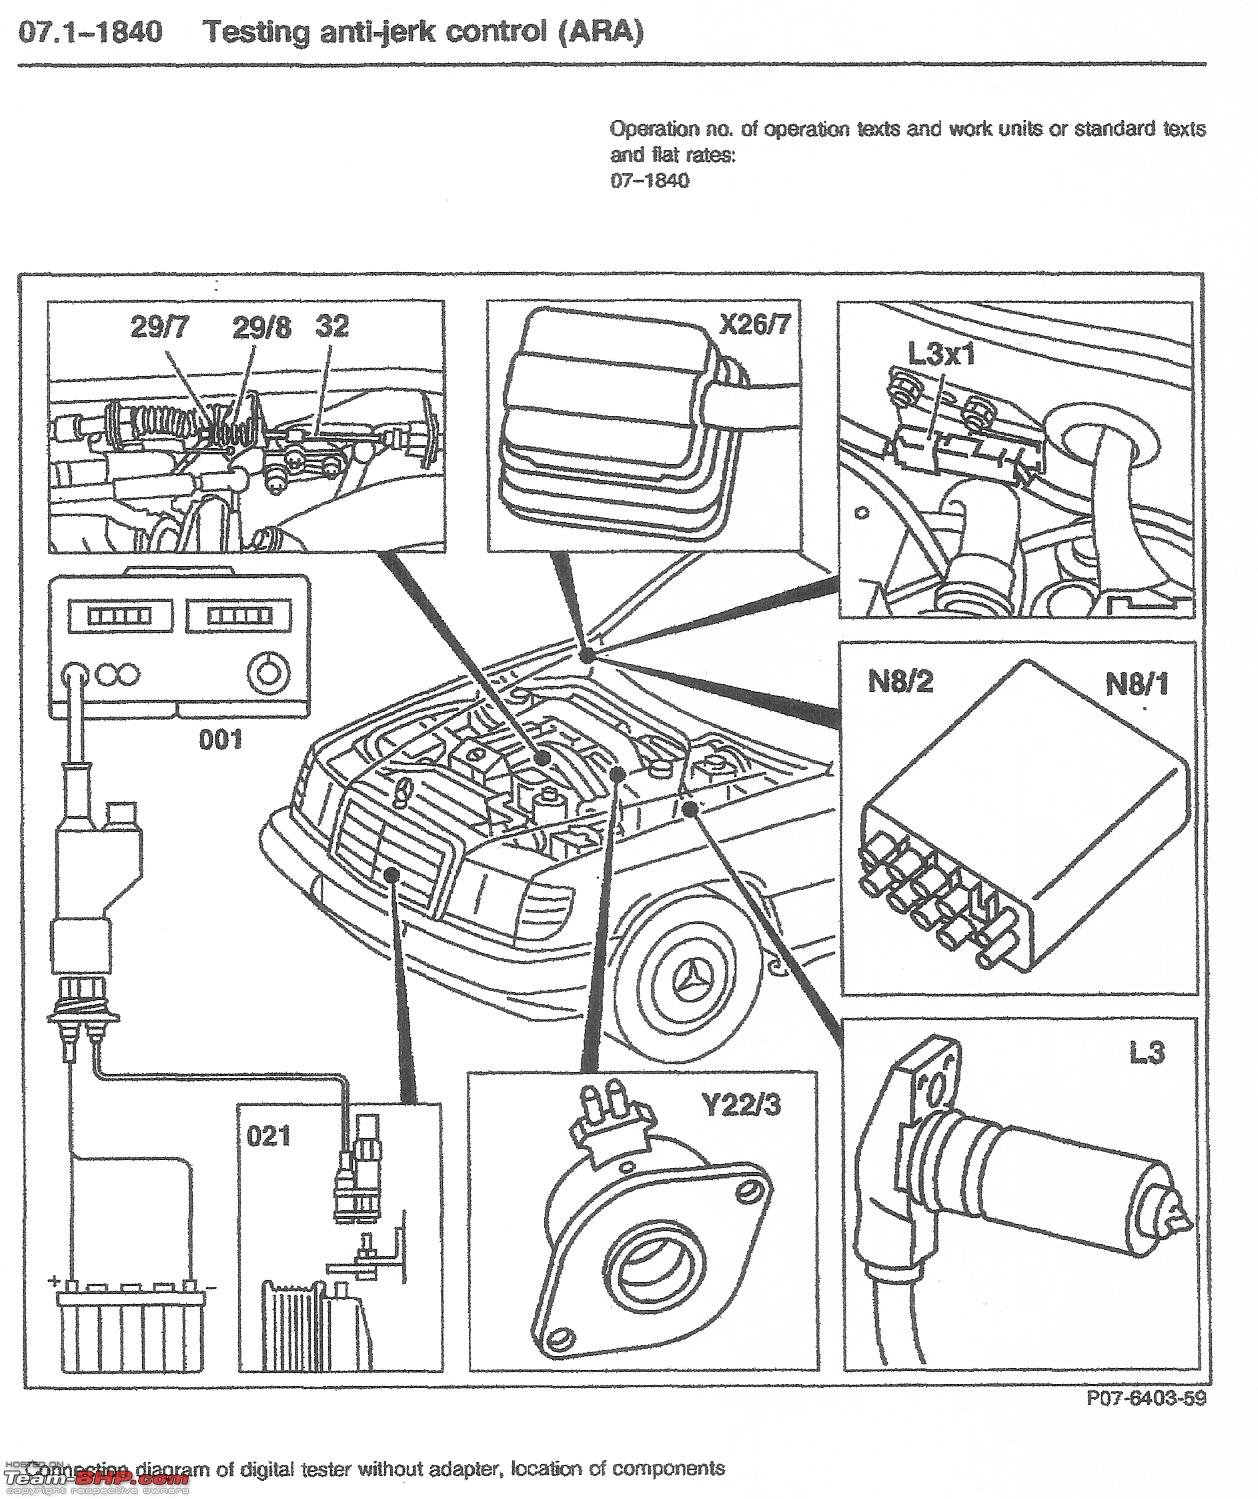 Main Breaker Fuse Box Fuse Box Transformer Wiring Diagram